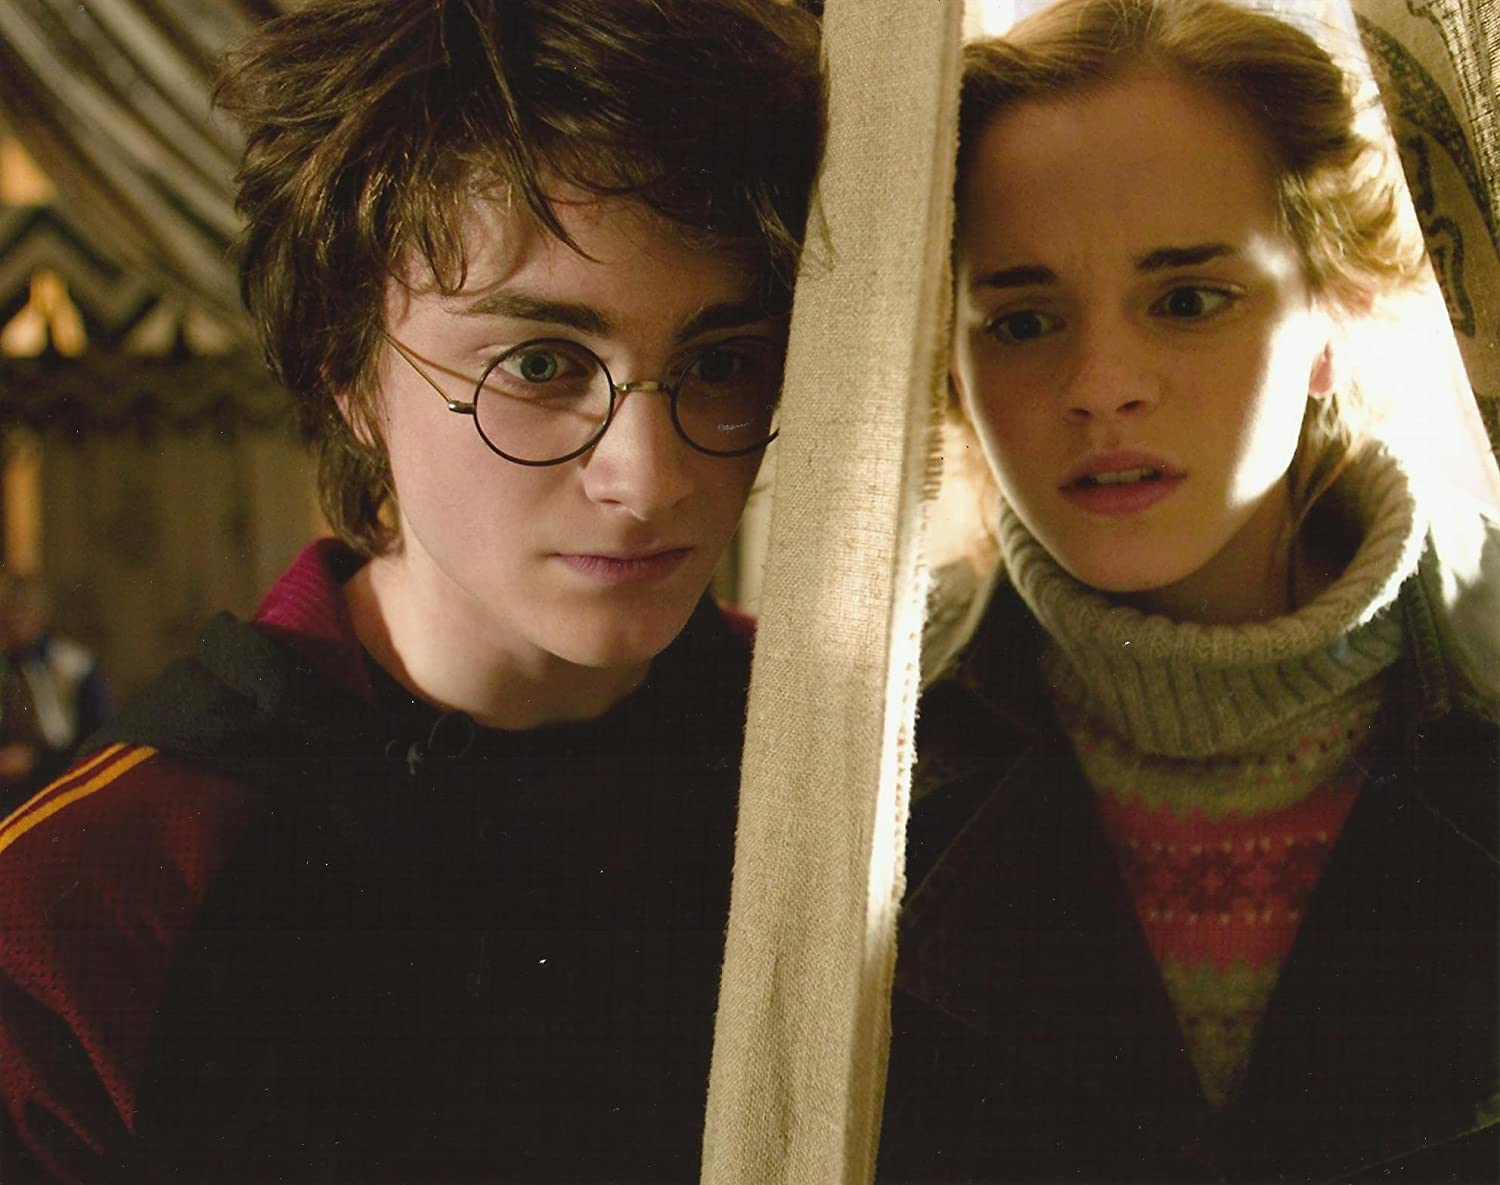 Harry Potter And The Goblet Of Fire Daniel Radcliffe Emma Watson Hermione Granger Talking To Harry In Tent 8 X 10 Photo At Amazon S Entertainment Collectibles Store